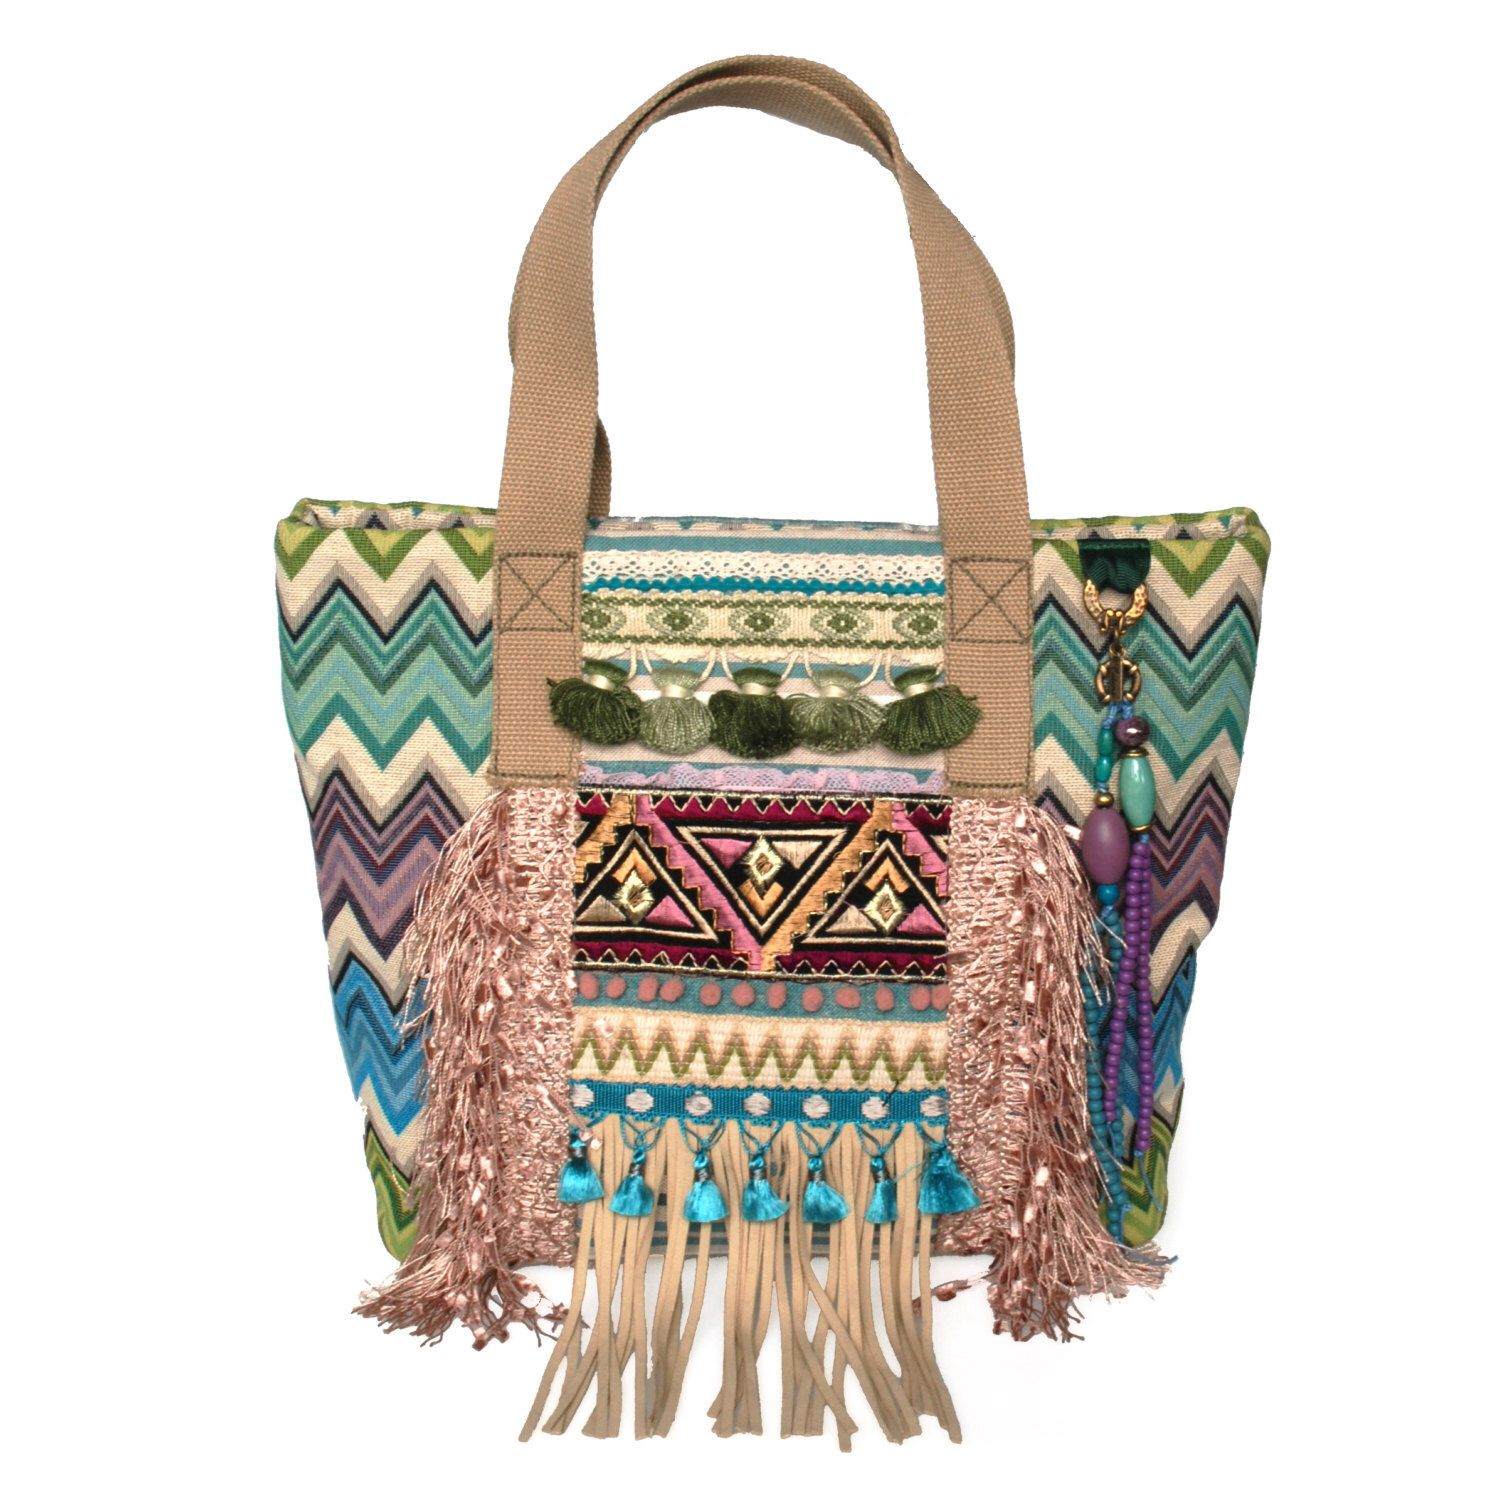 Ibiza Tote Bag Fringed In Turquoise And Lilac Handmade Purse Hippie Style Ooak Handbags